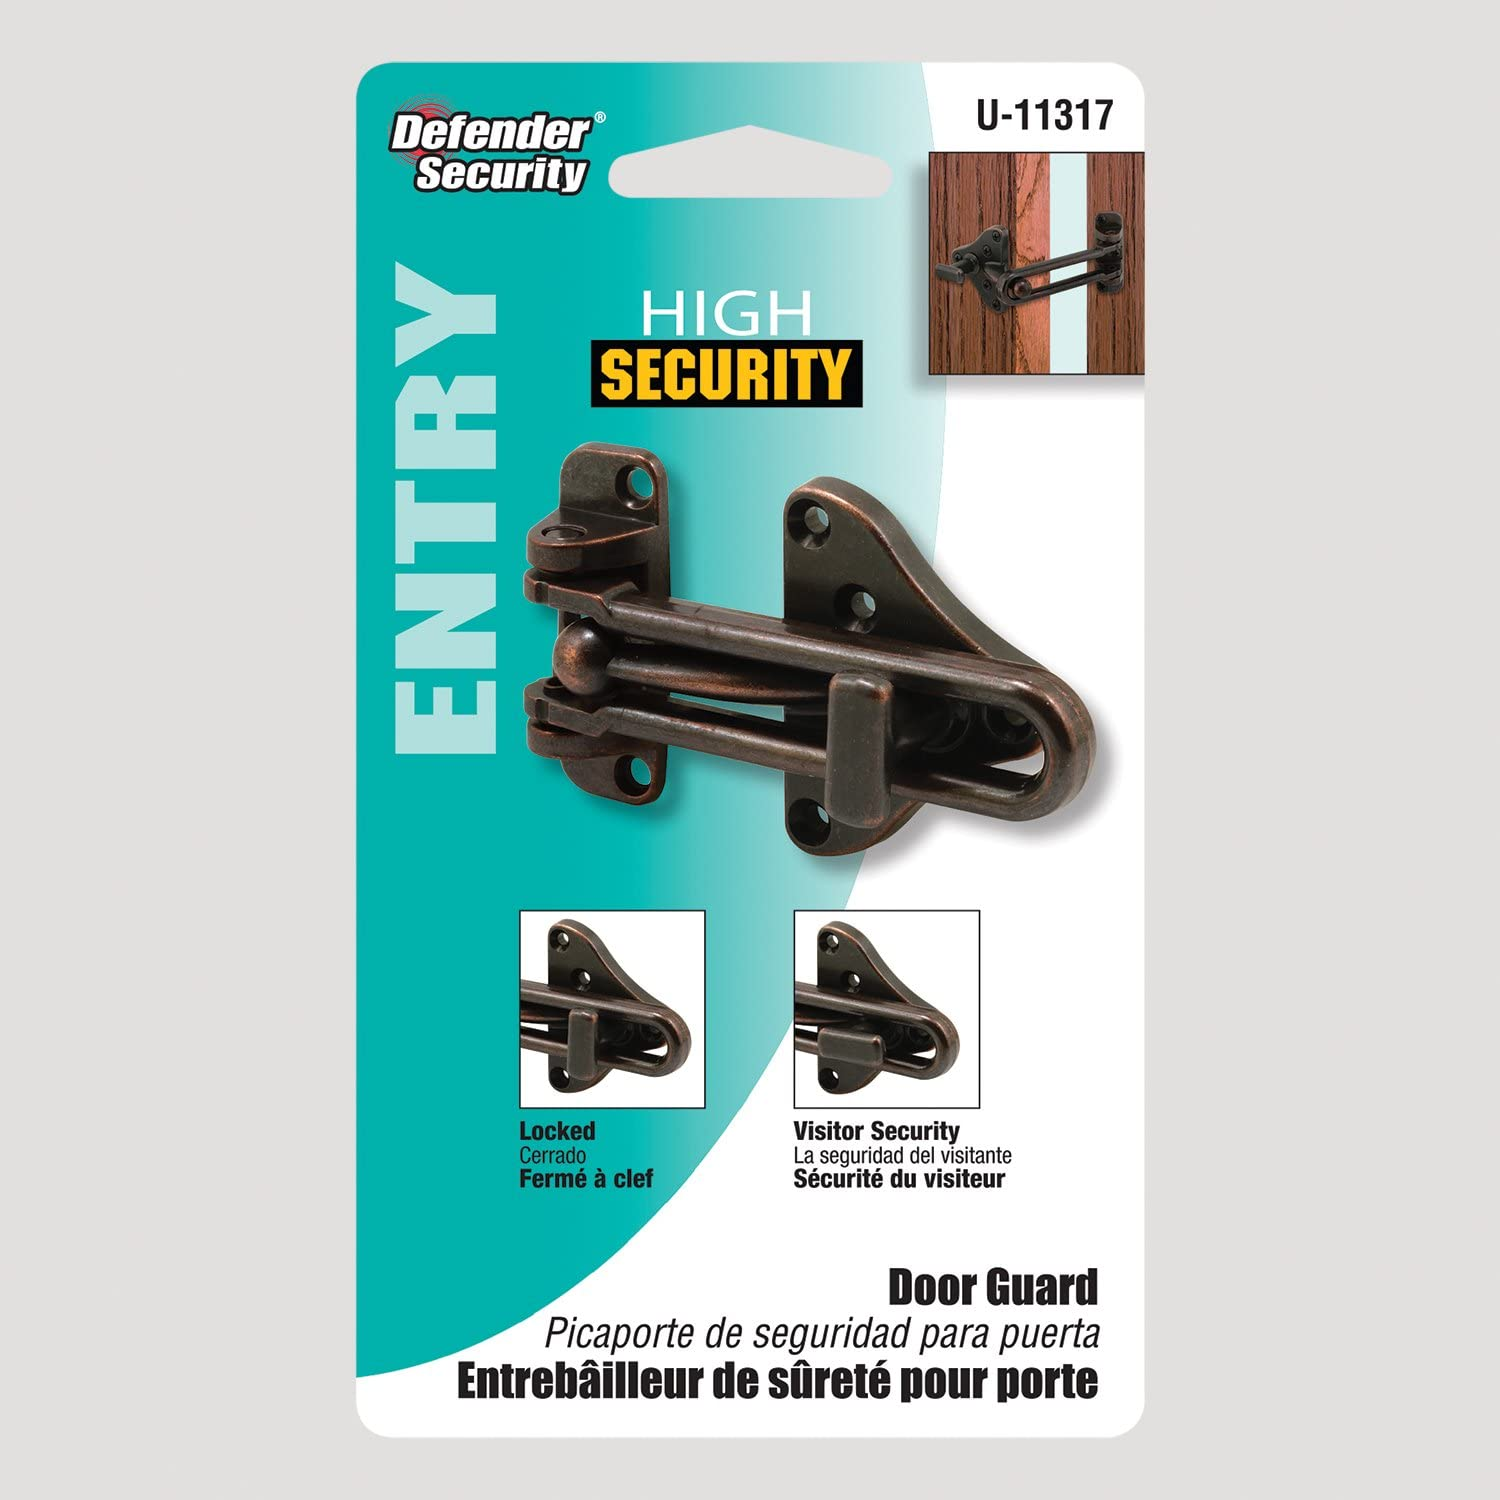 Defender Security U 11317 Swing Bar Door Guard With High Security Auxiliary Lock 1-Pack Classic Bronze Finish